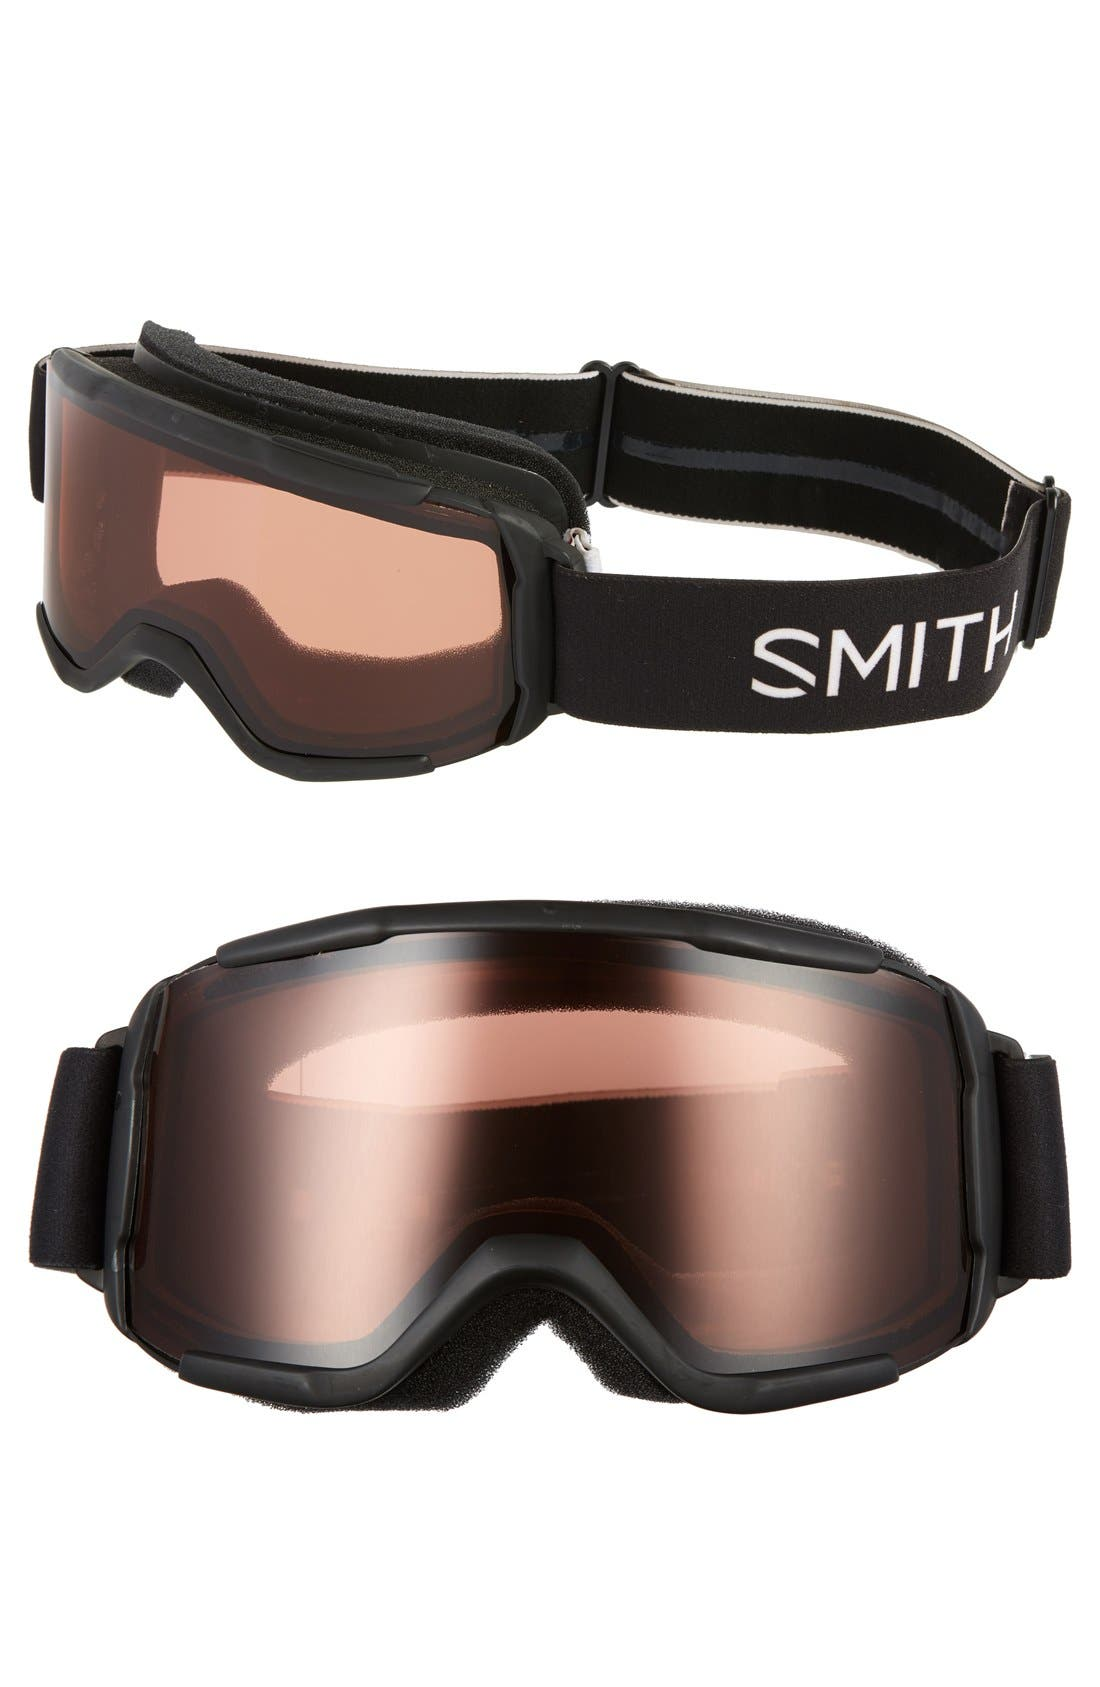 'Daredevil' Snow Goggles,                         Main,                         color, Black/ Rc36